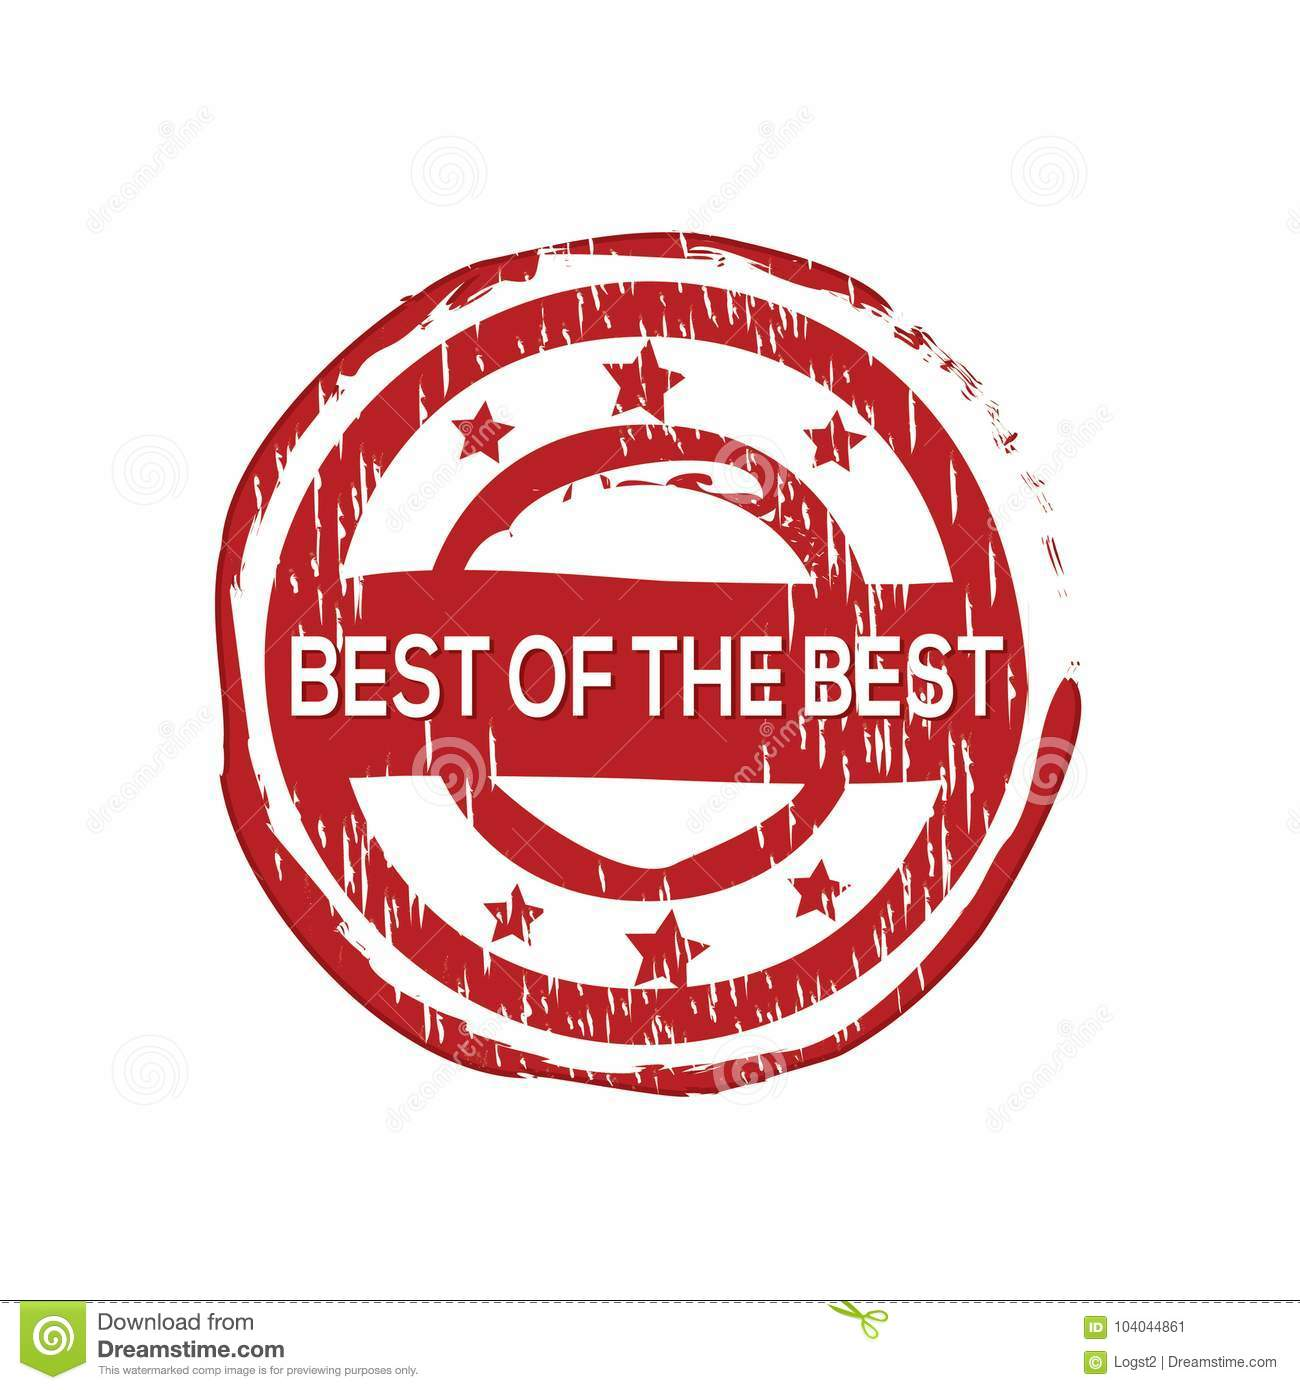 `Best of the best` vector rubber stamp